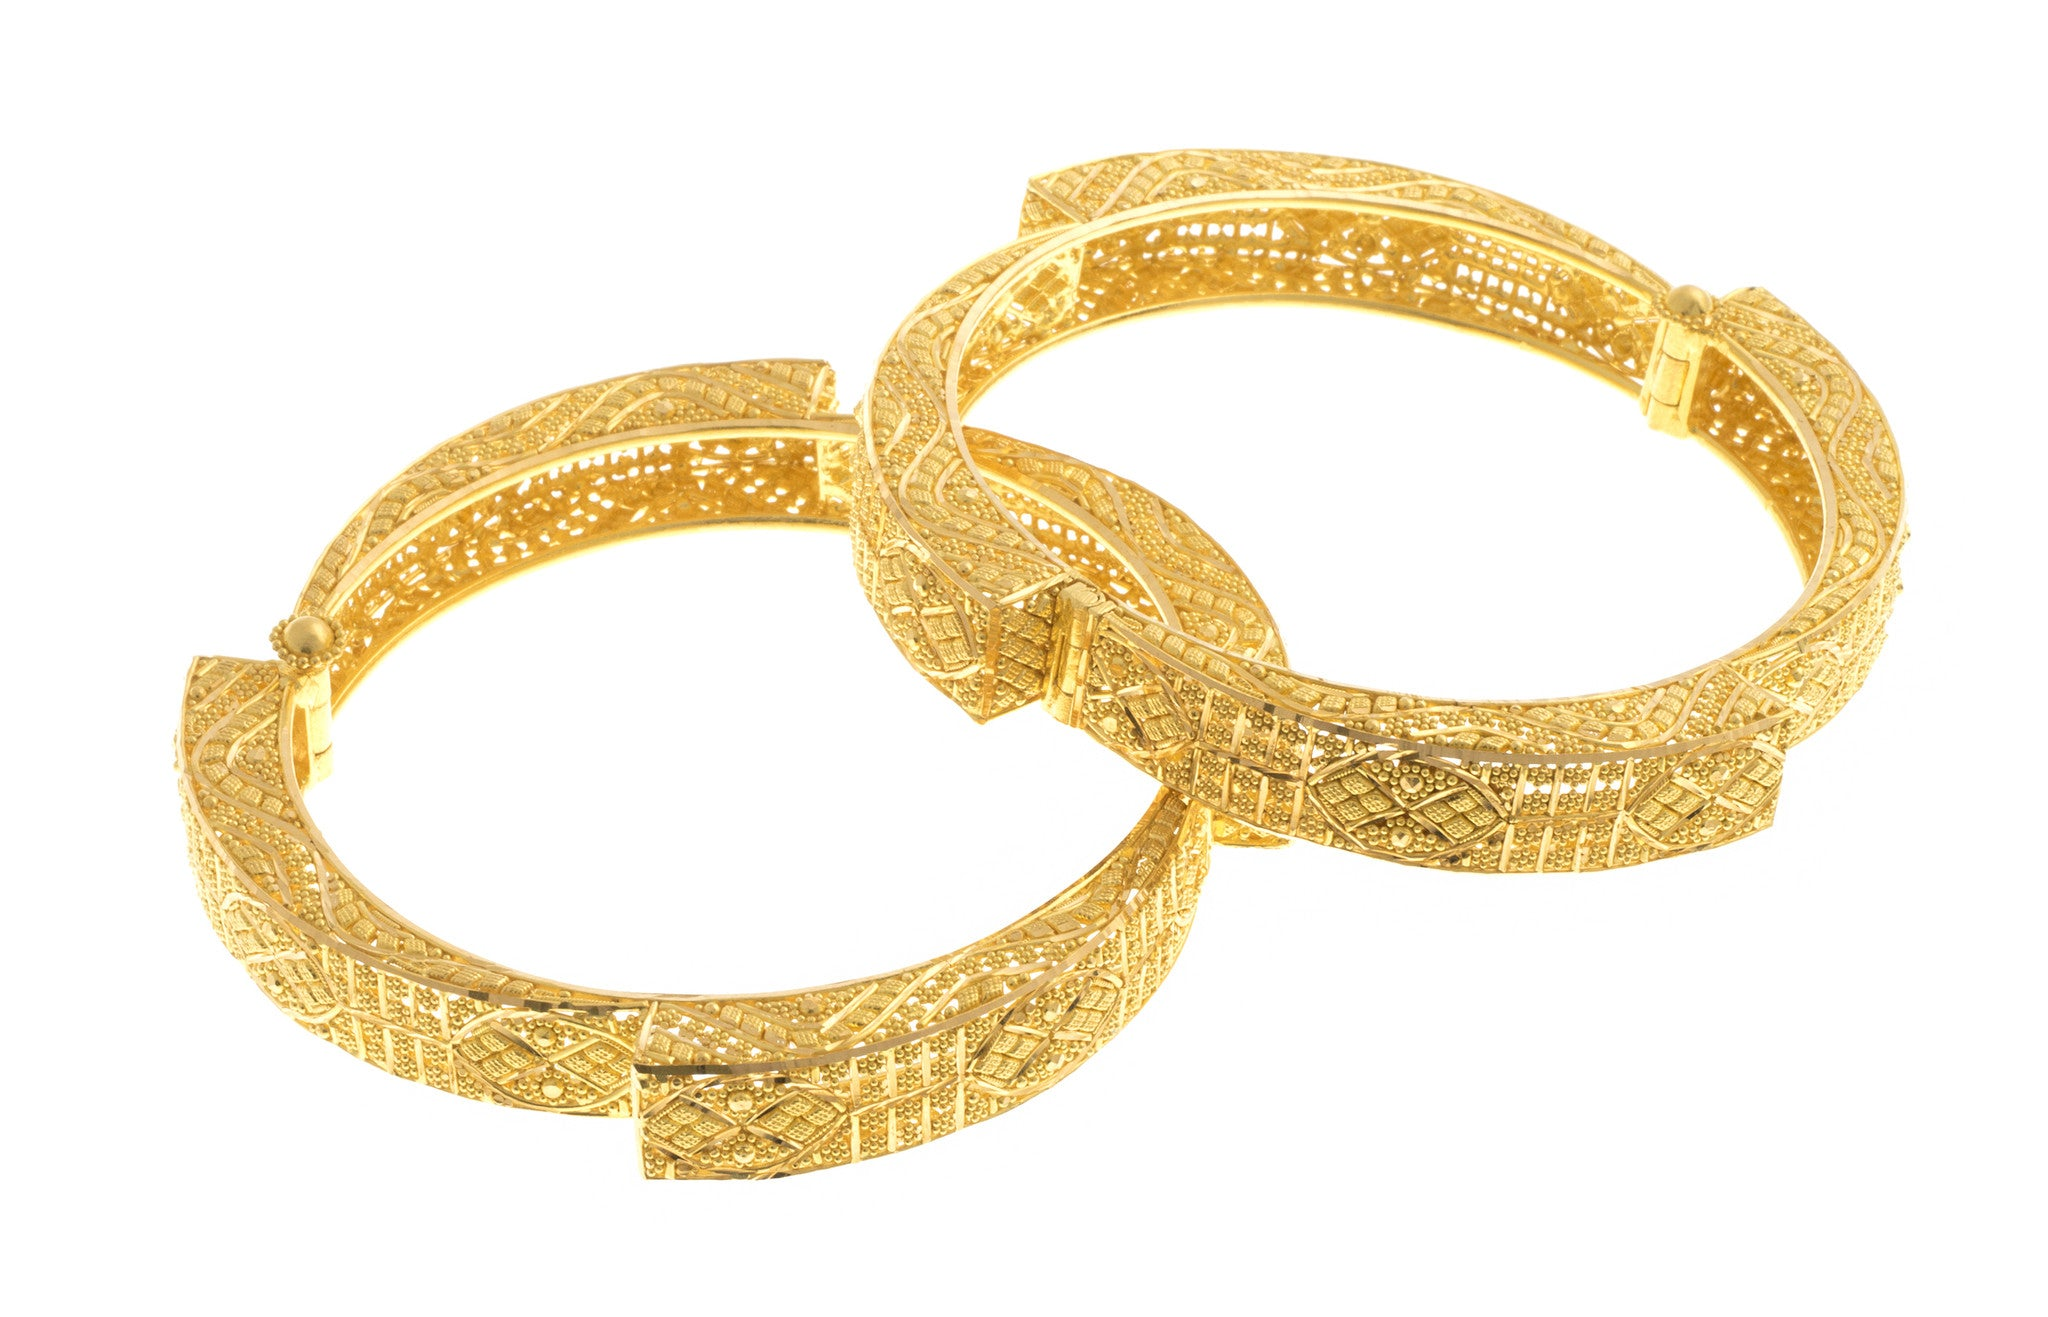 Filigree 22ct Yellow Gold Bangle, Minar Jewellers - 3